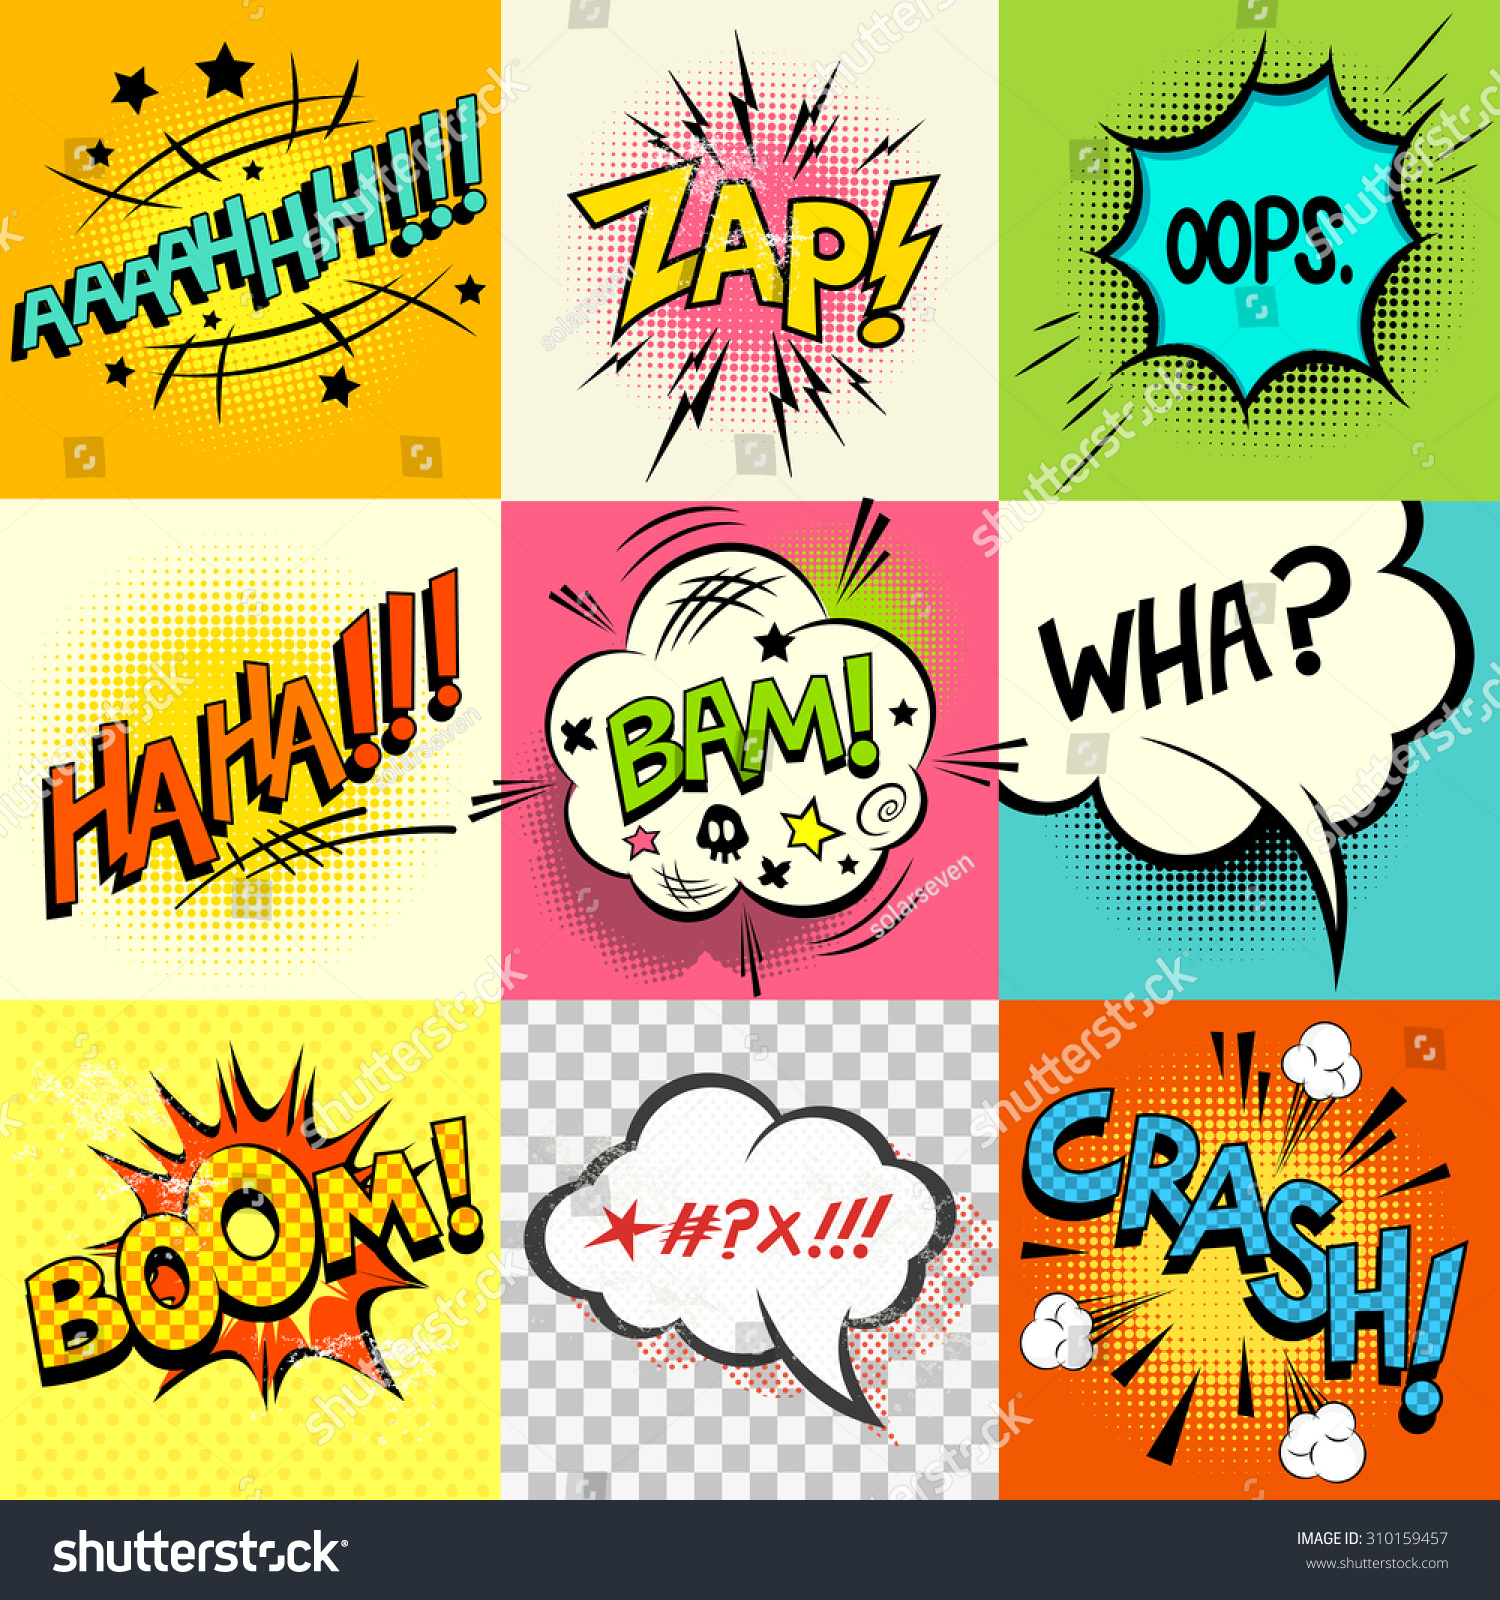 Expression Of Words Written In Ink: Comic Book Speech Bubbles And Expression Words. Stock